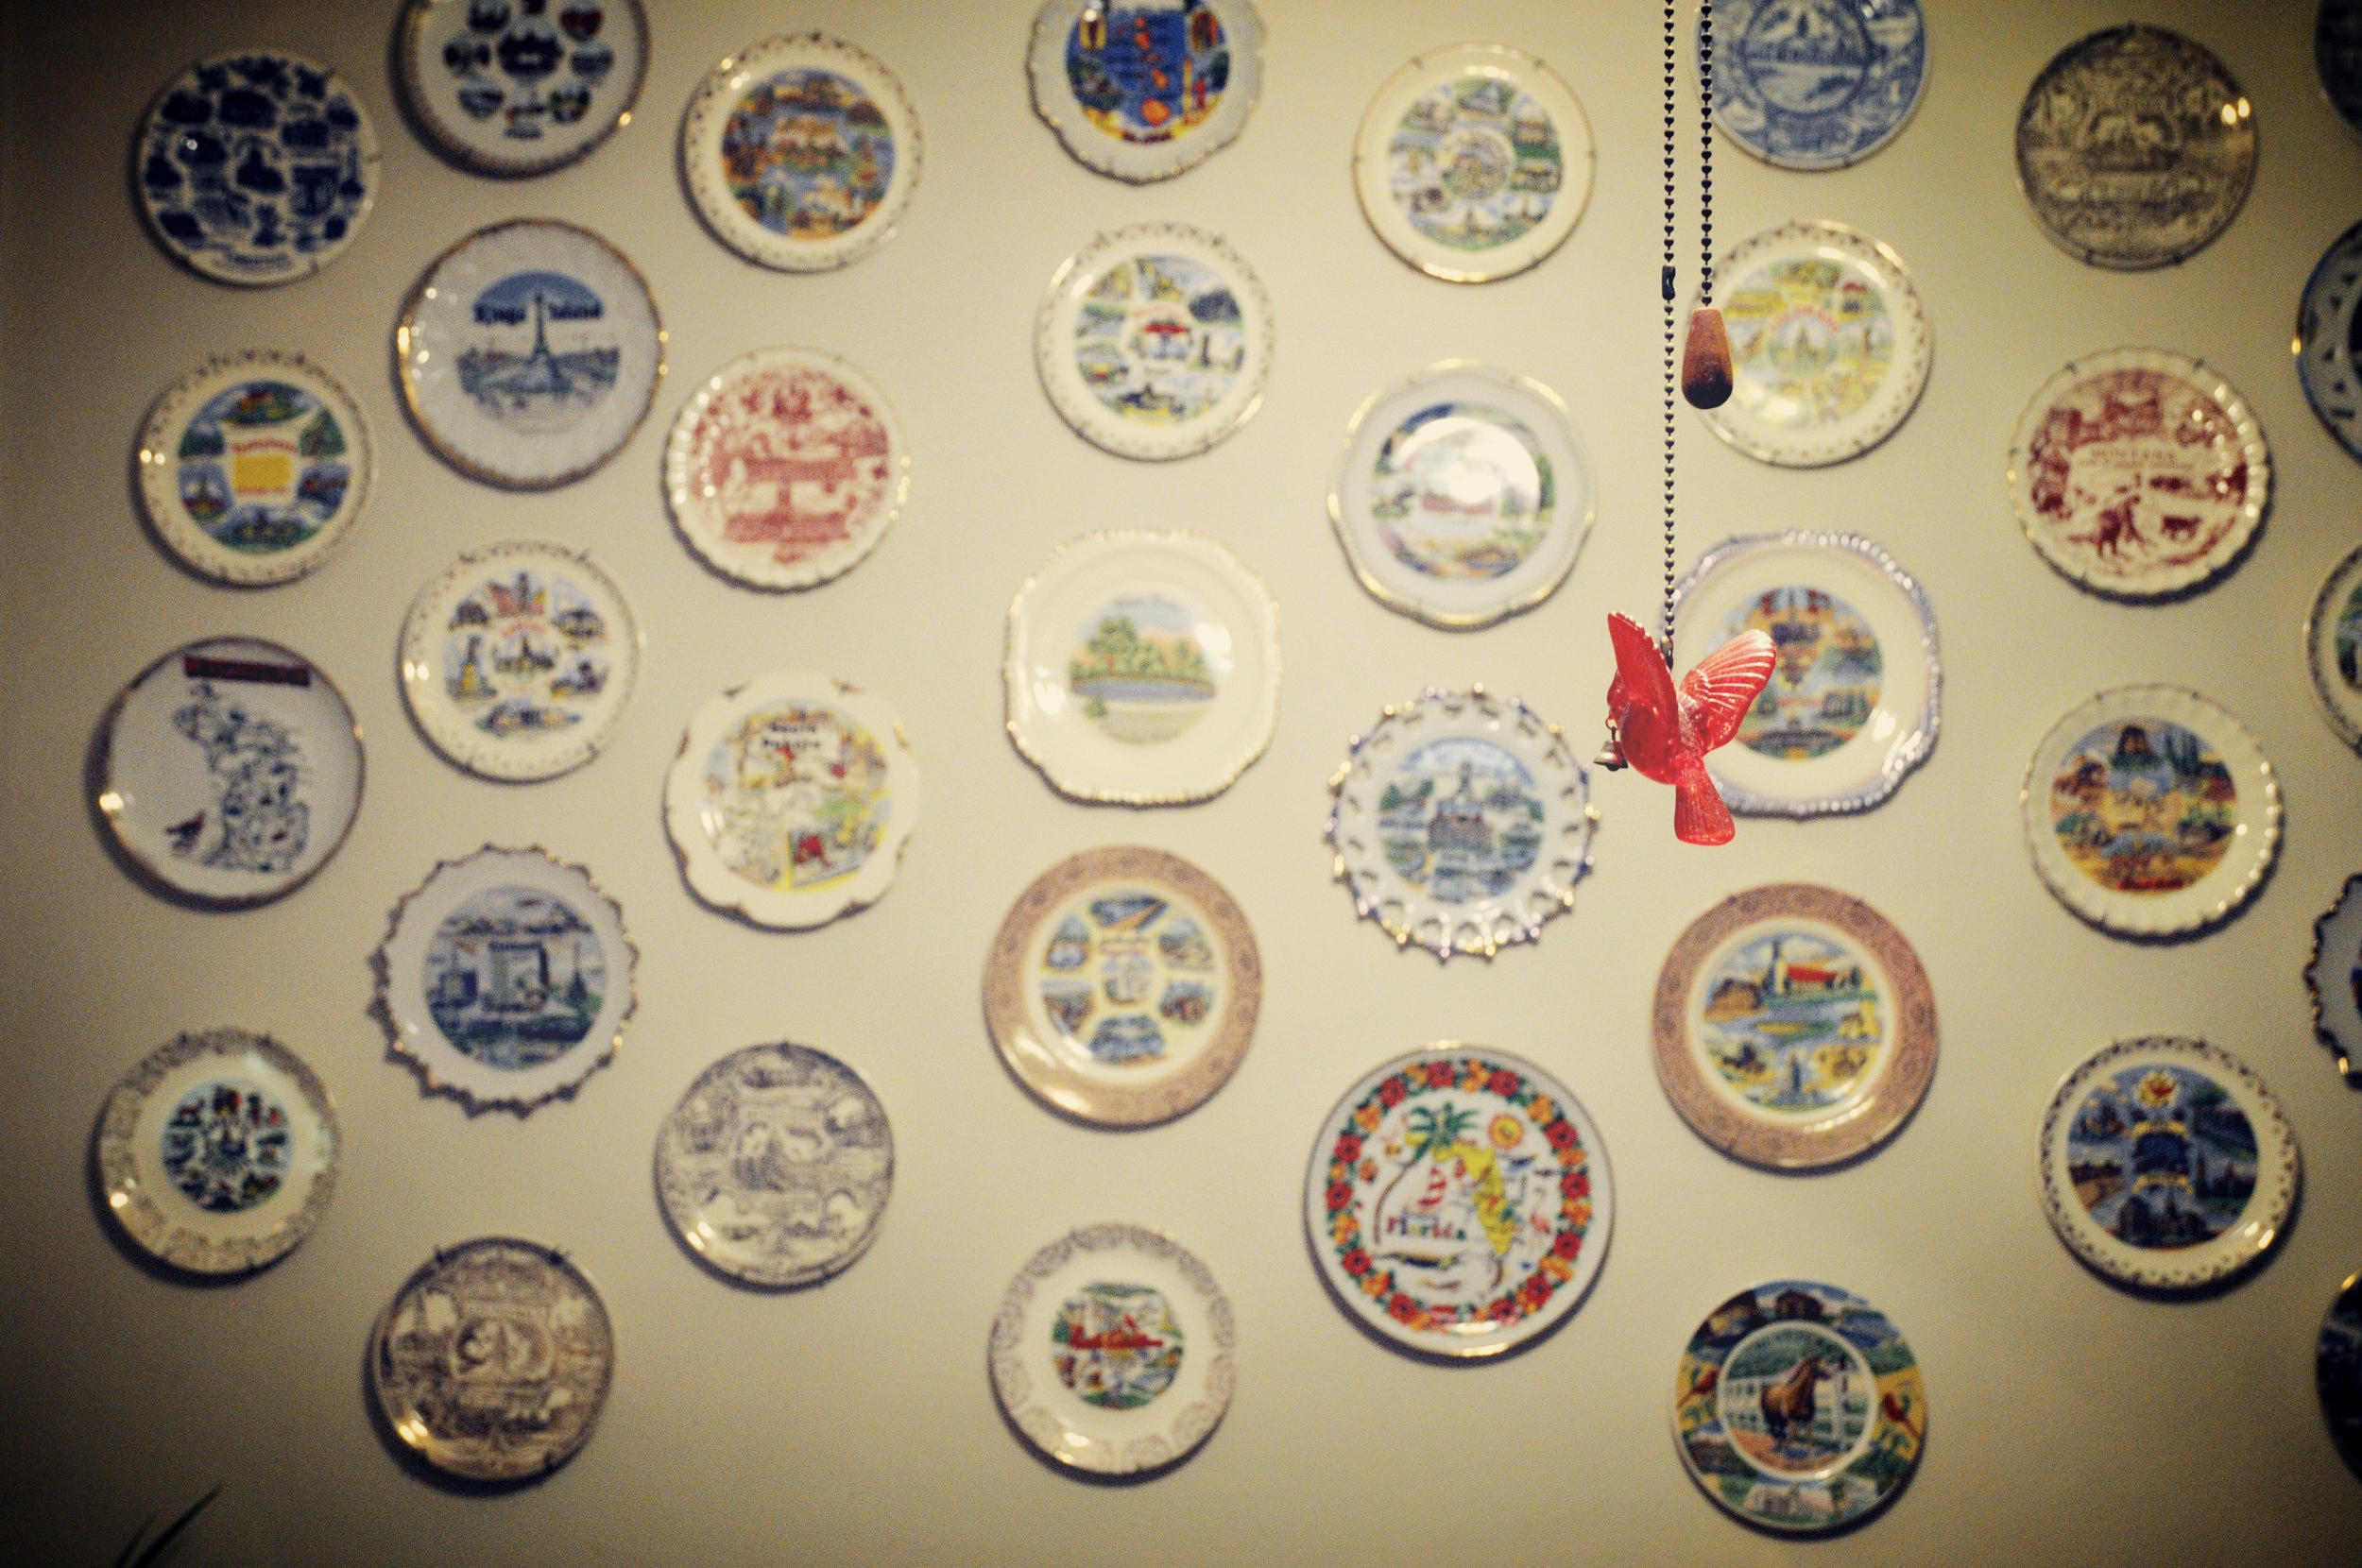 One for every location! Each tells a story and history of the area visited.